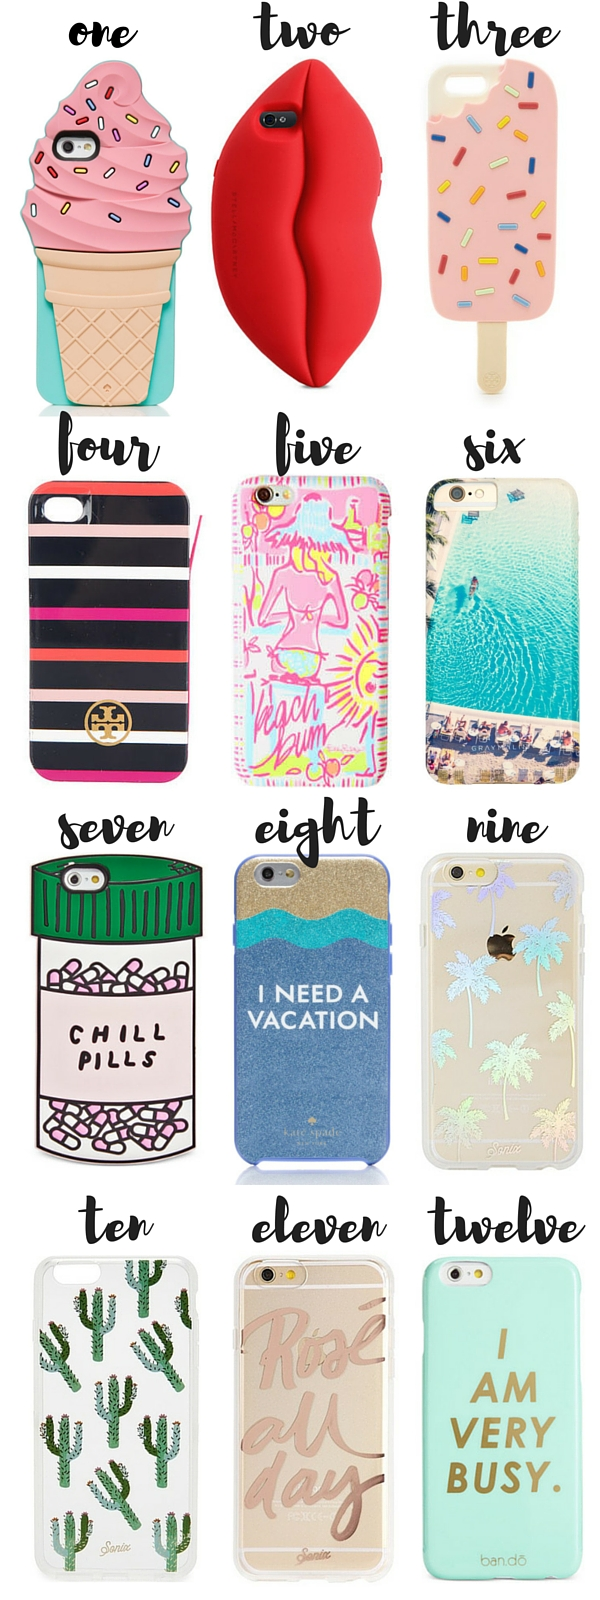 12 Best Summer-Themed iPhone Cases for the Season